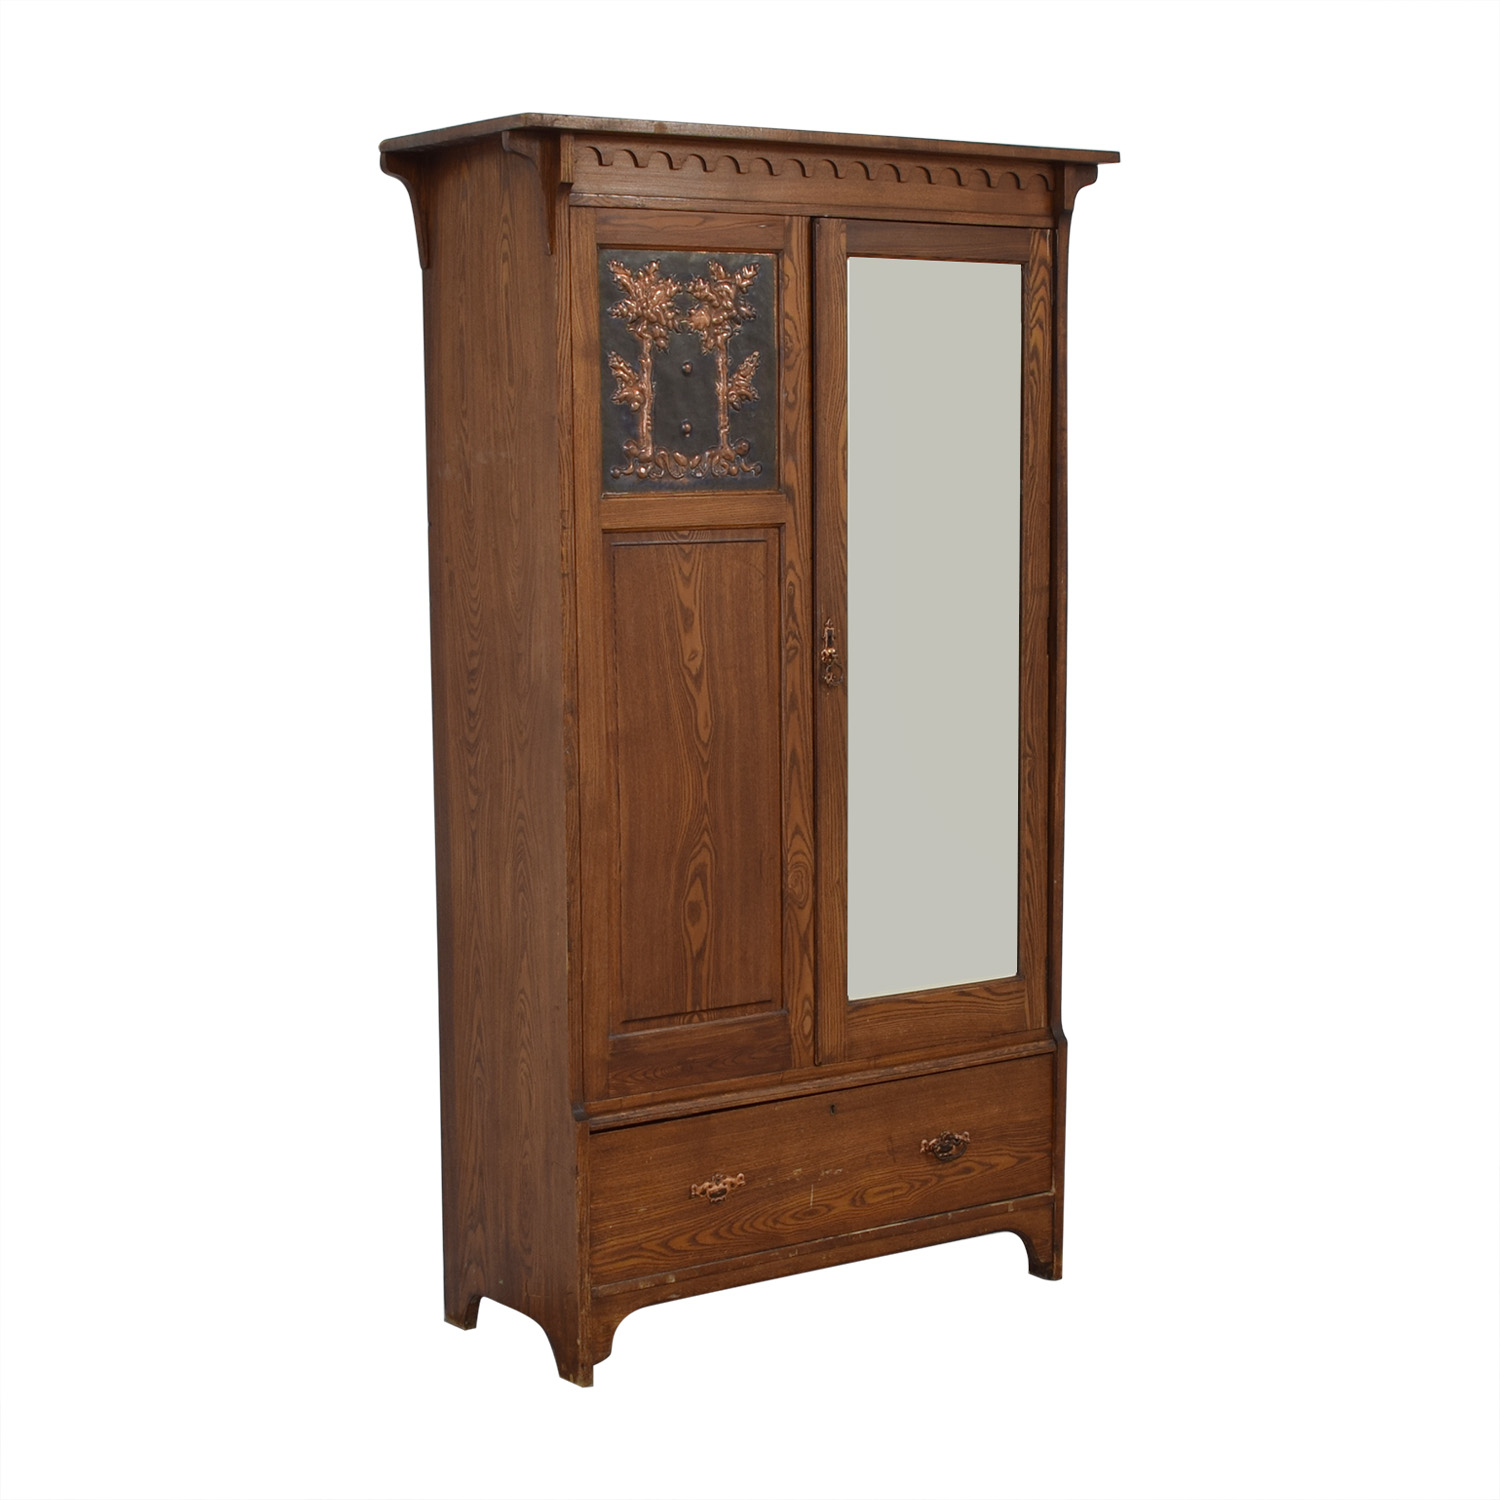 Vintage Arts and Crafts Armoire Wardrobes & Armoires